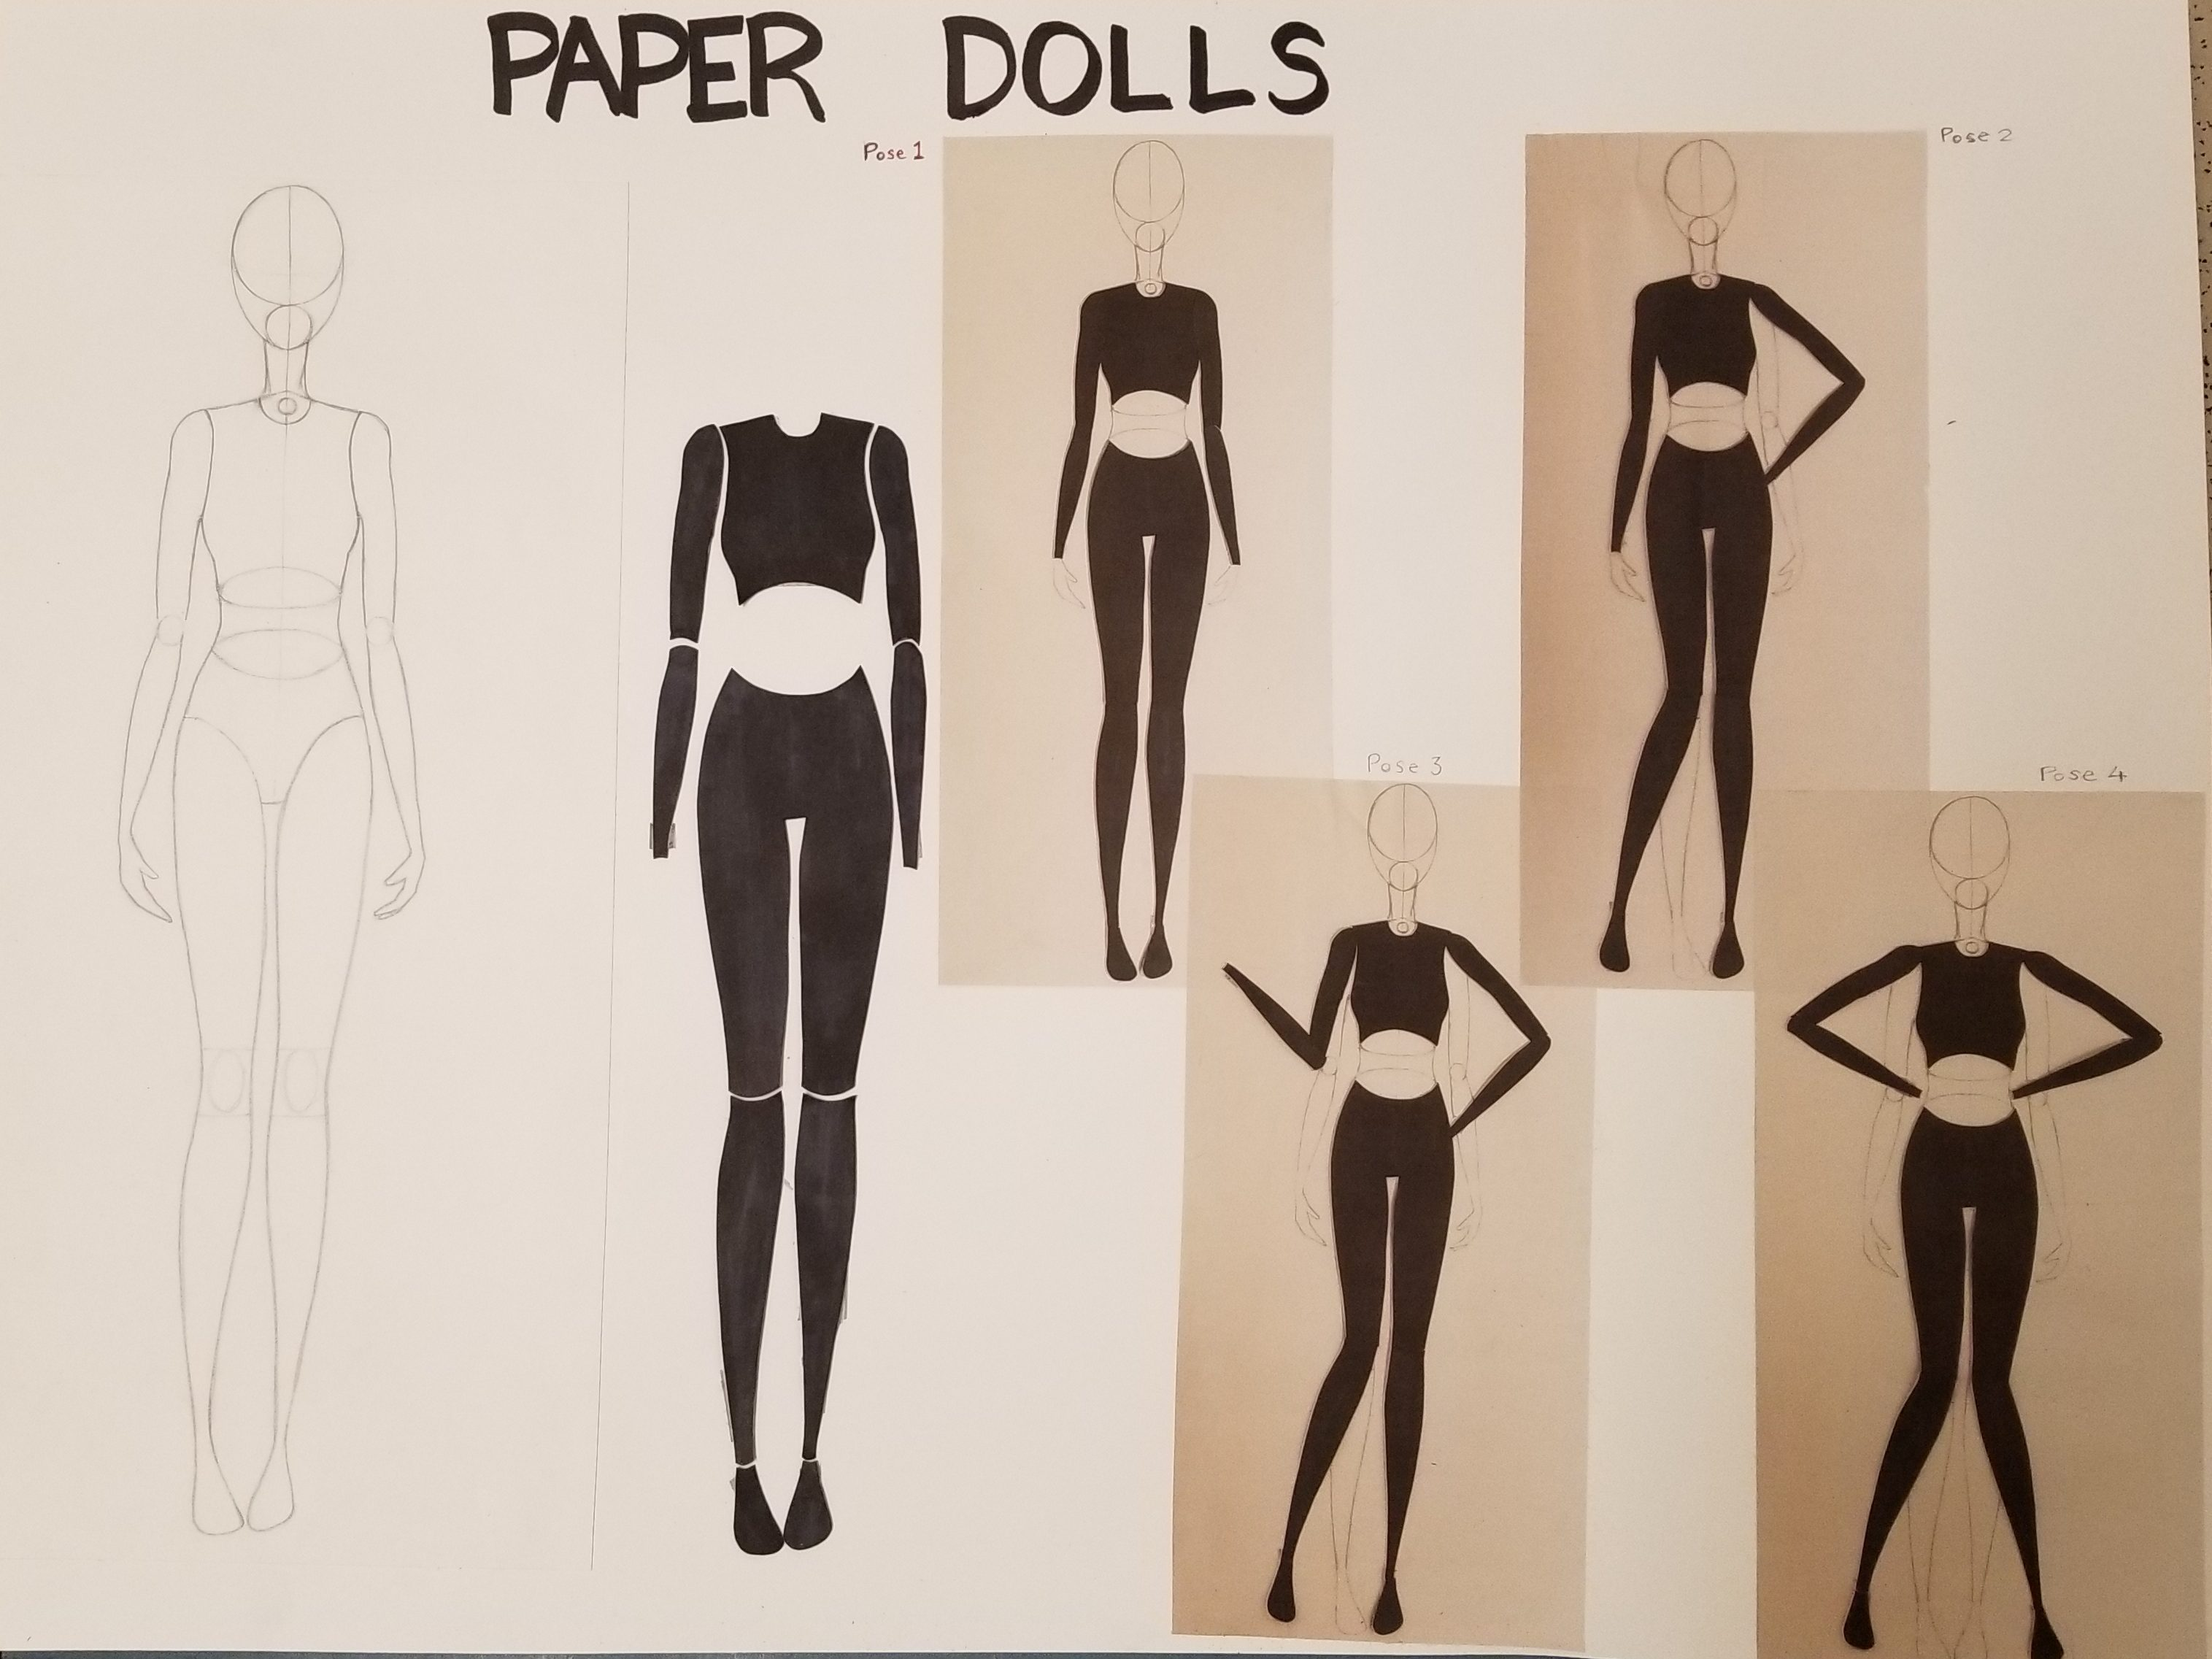 Drawing and Paper Doll Assignment